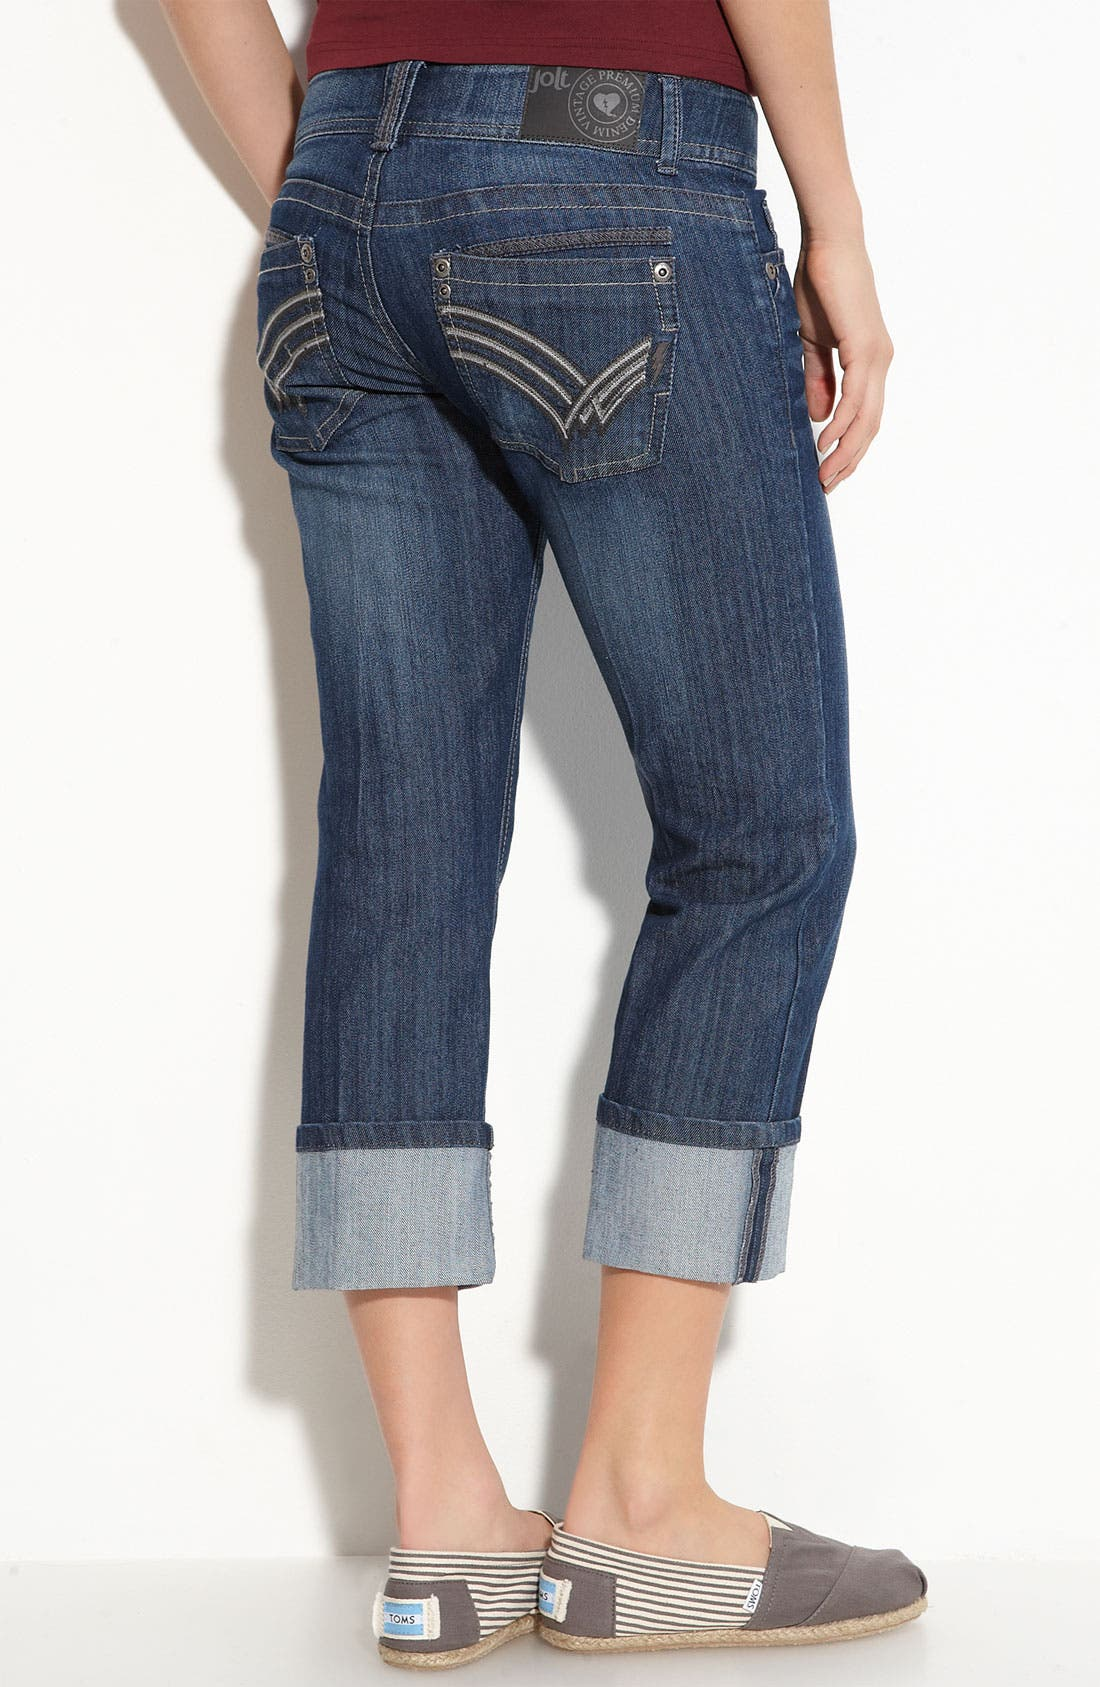 Main Image - Jolt Roll Cuff Crop Jeans (Medium Wash) (Juniors)